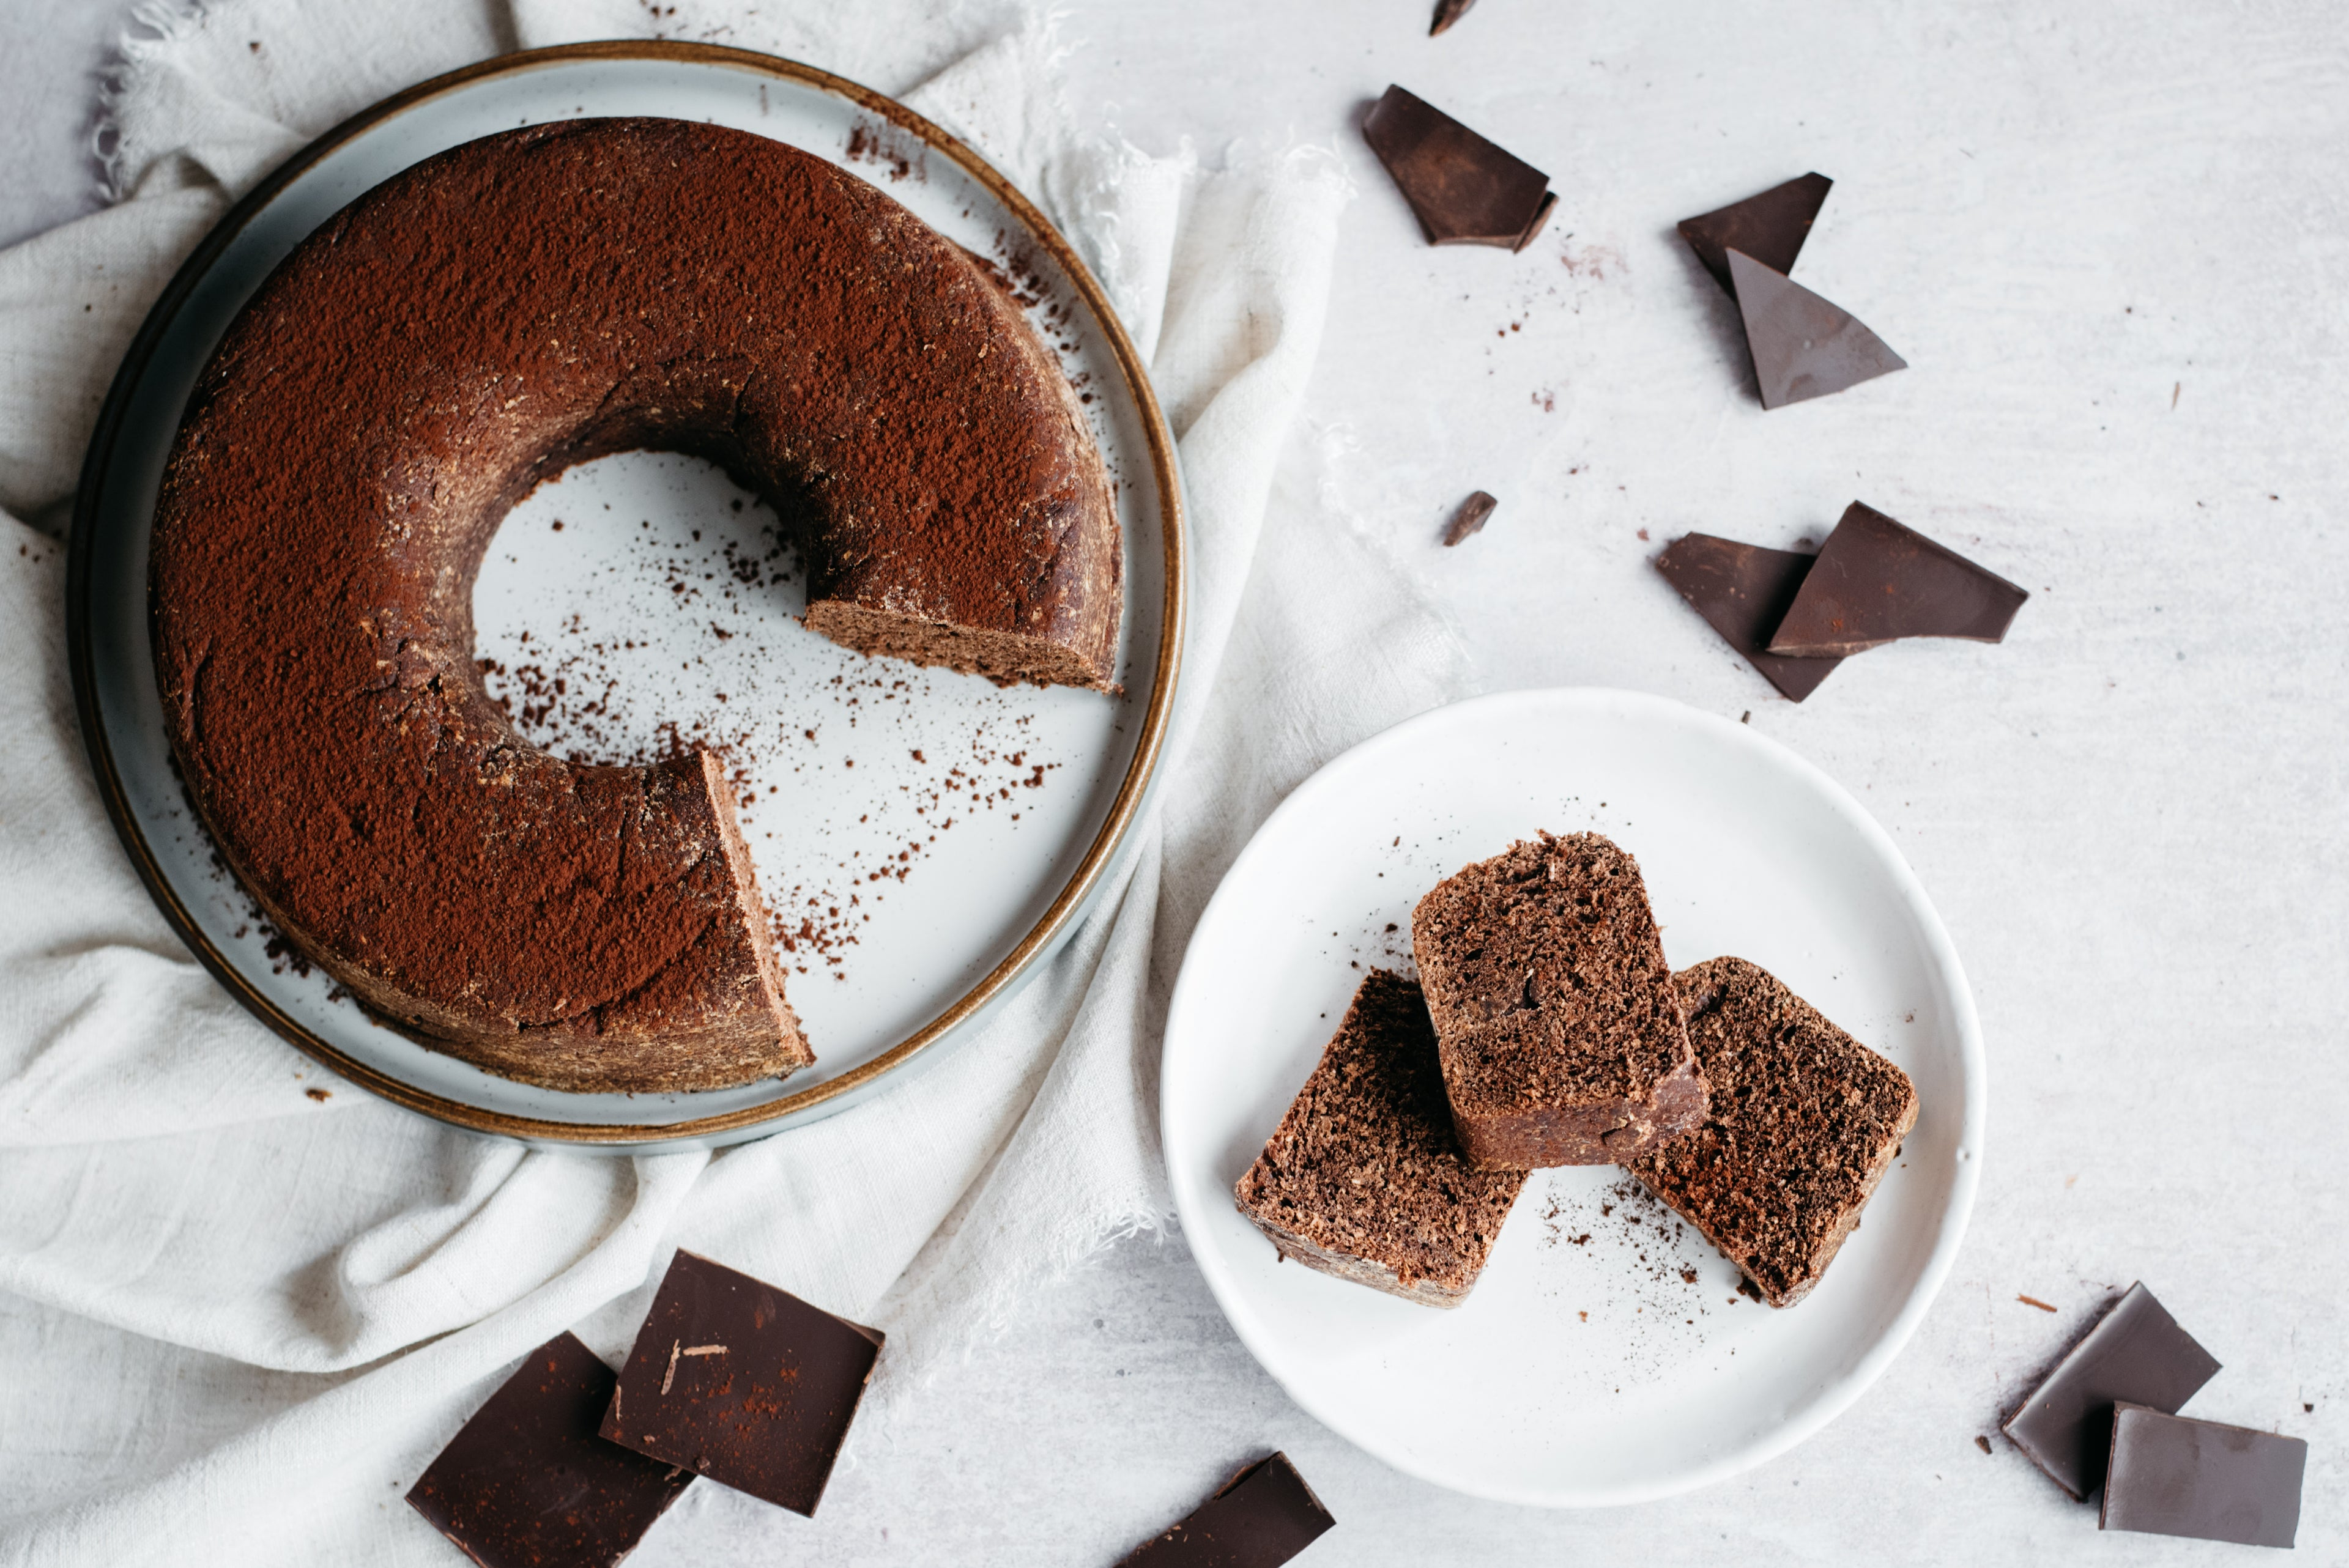 Top view of Chocolate Bread, with slices on a plate, dusted in cocoa powder.